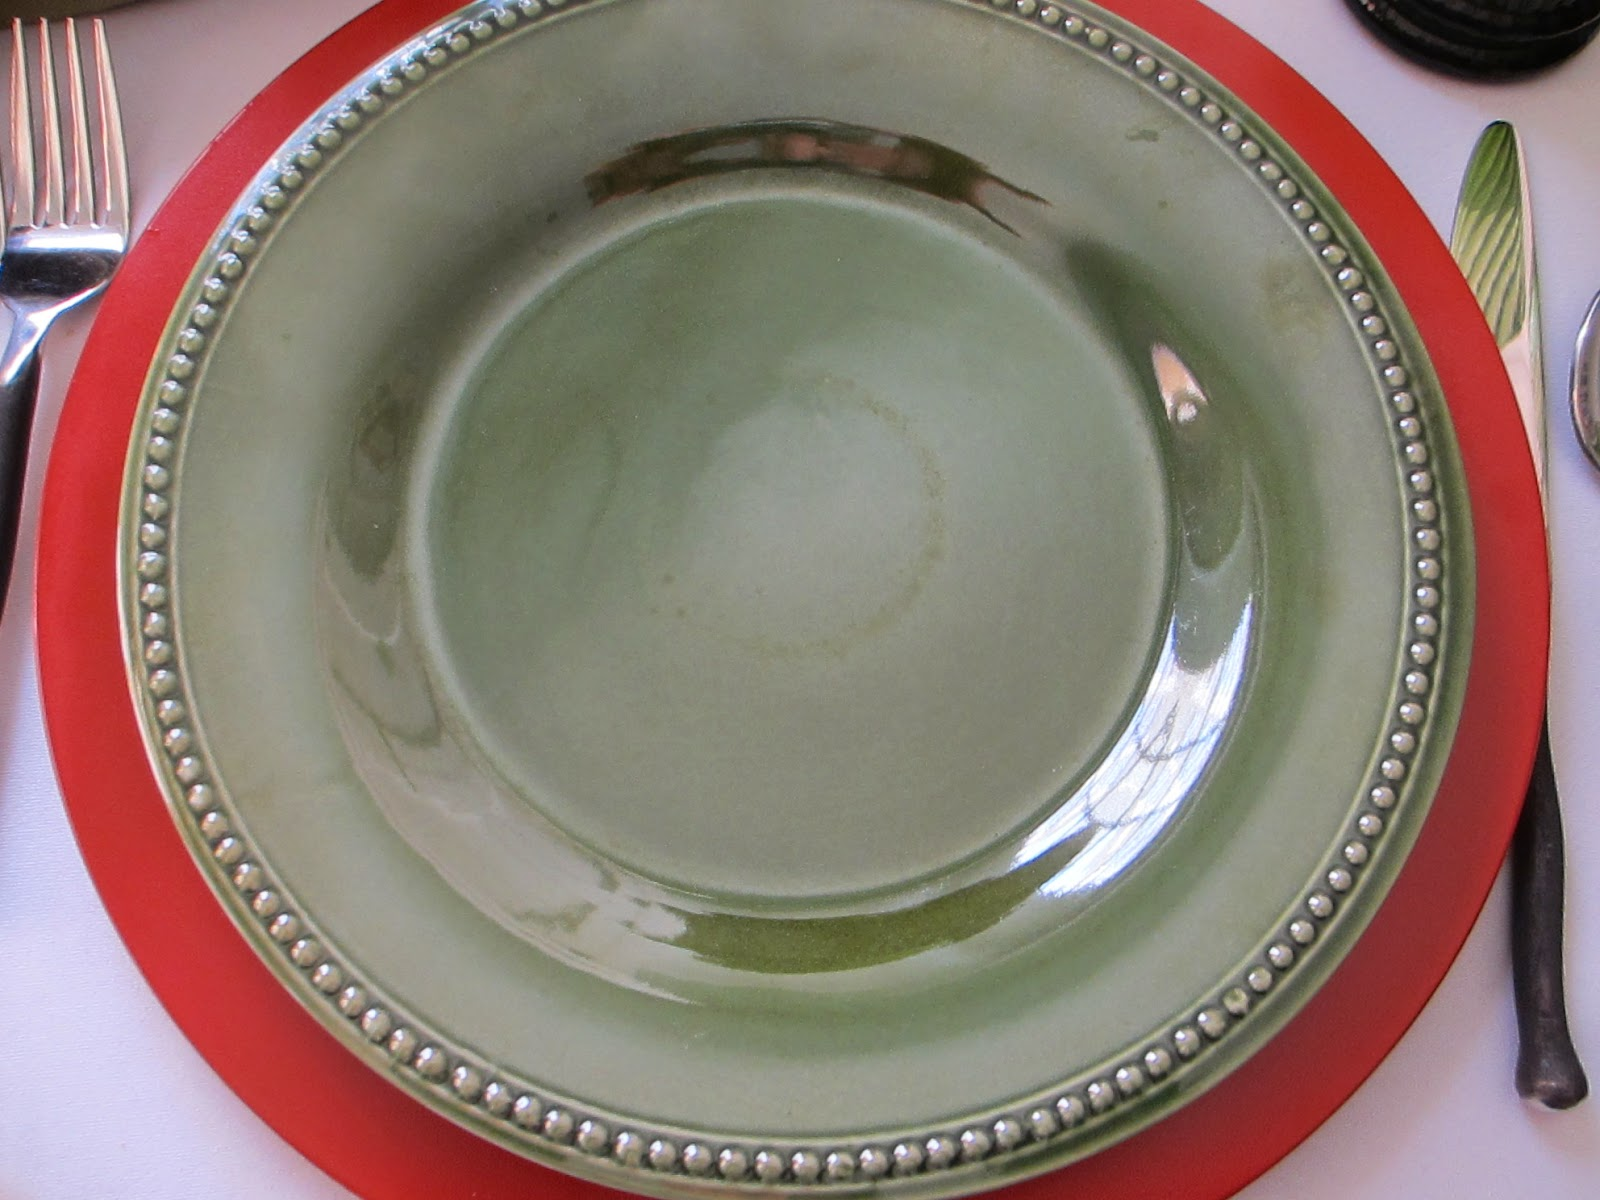 The dark olive green dinner plate is  Spice Route  Clove from Pier 1 & Table for One: August 2014